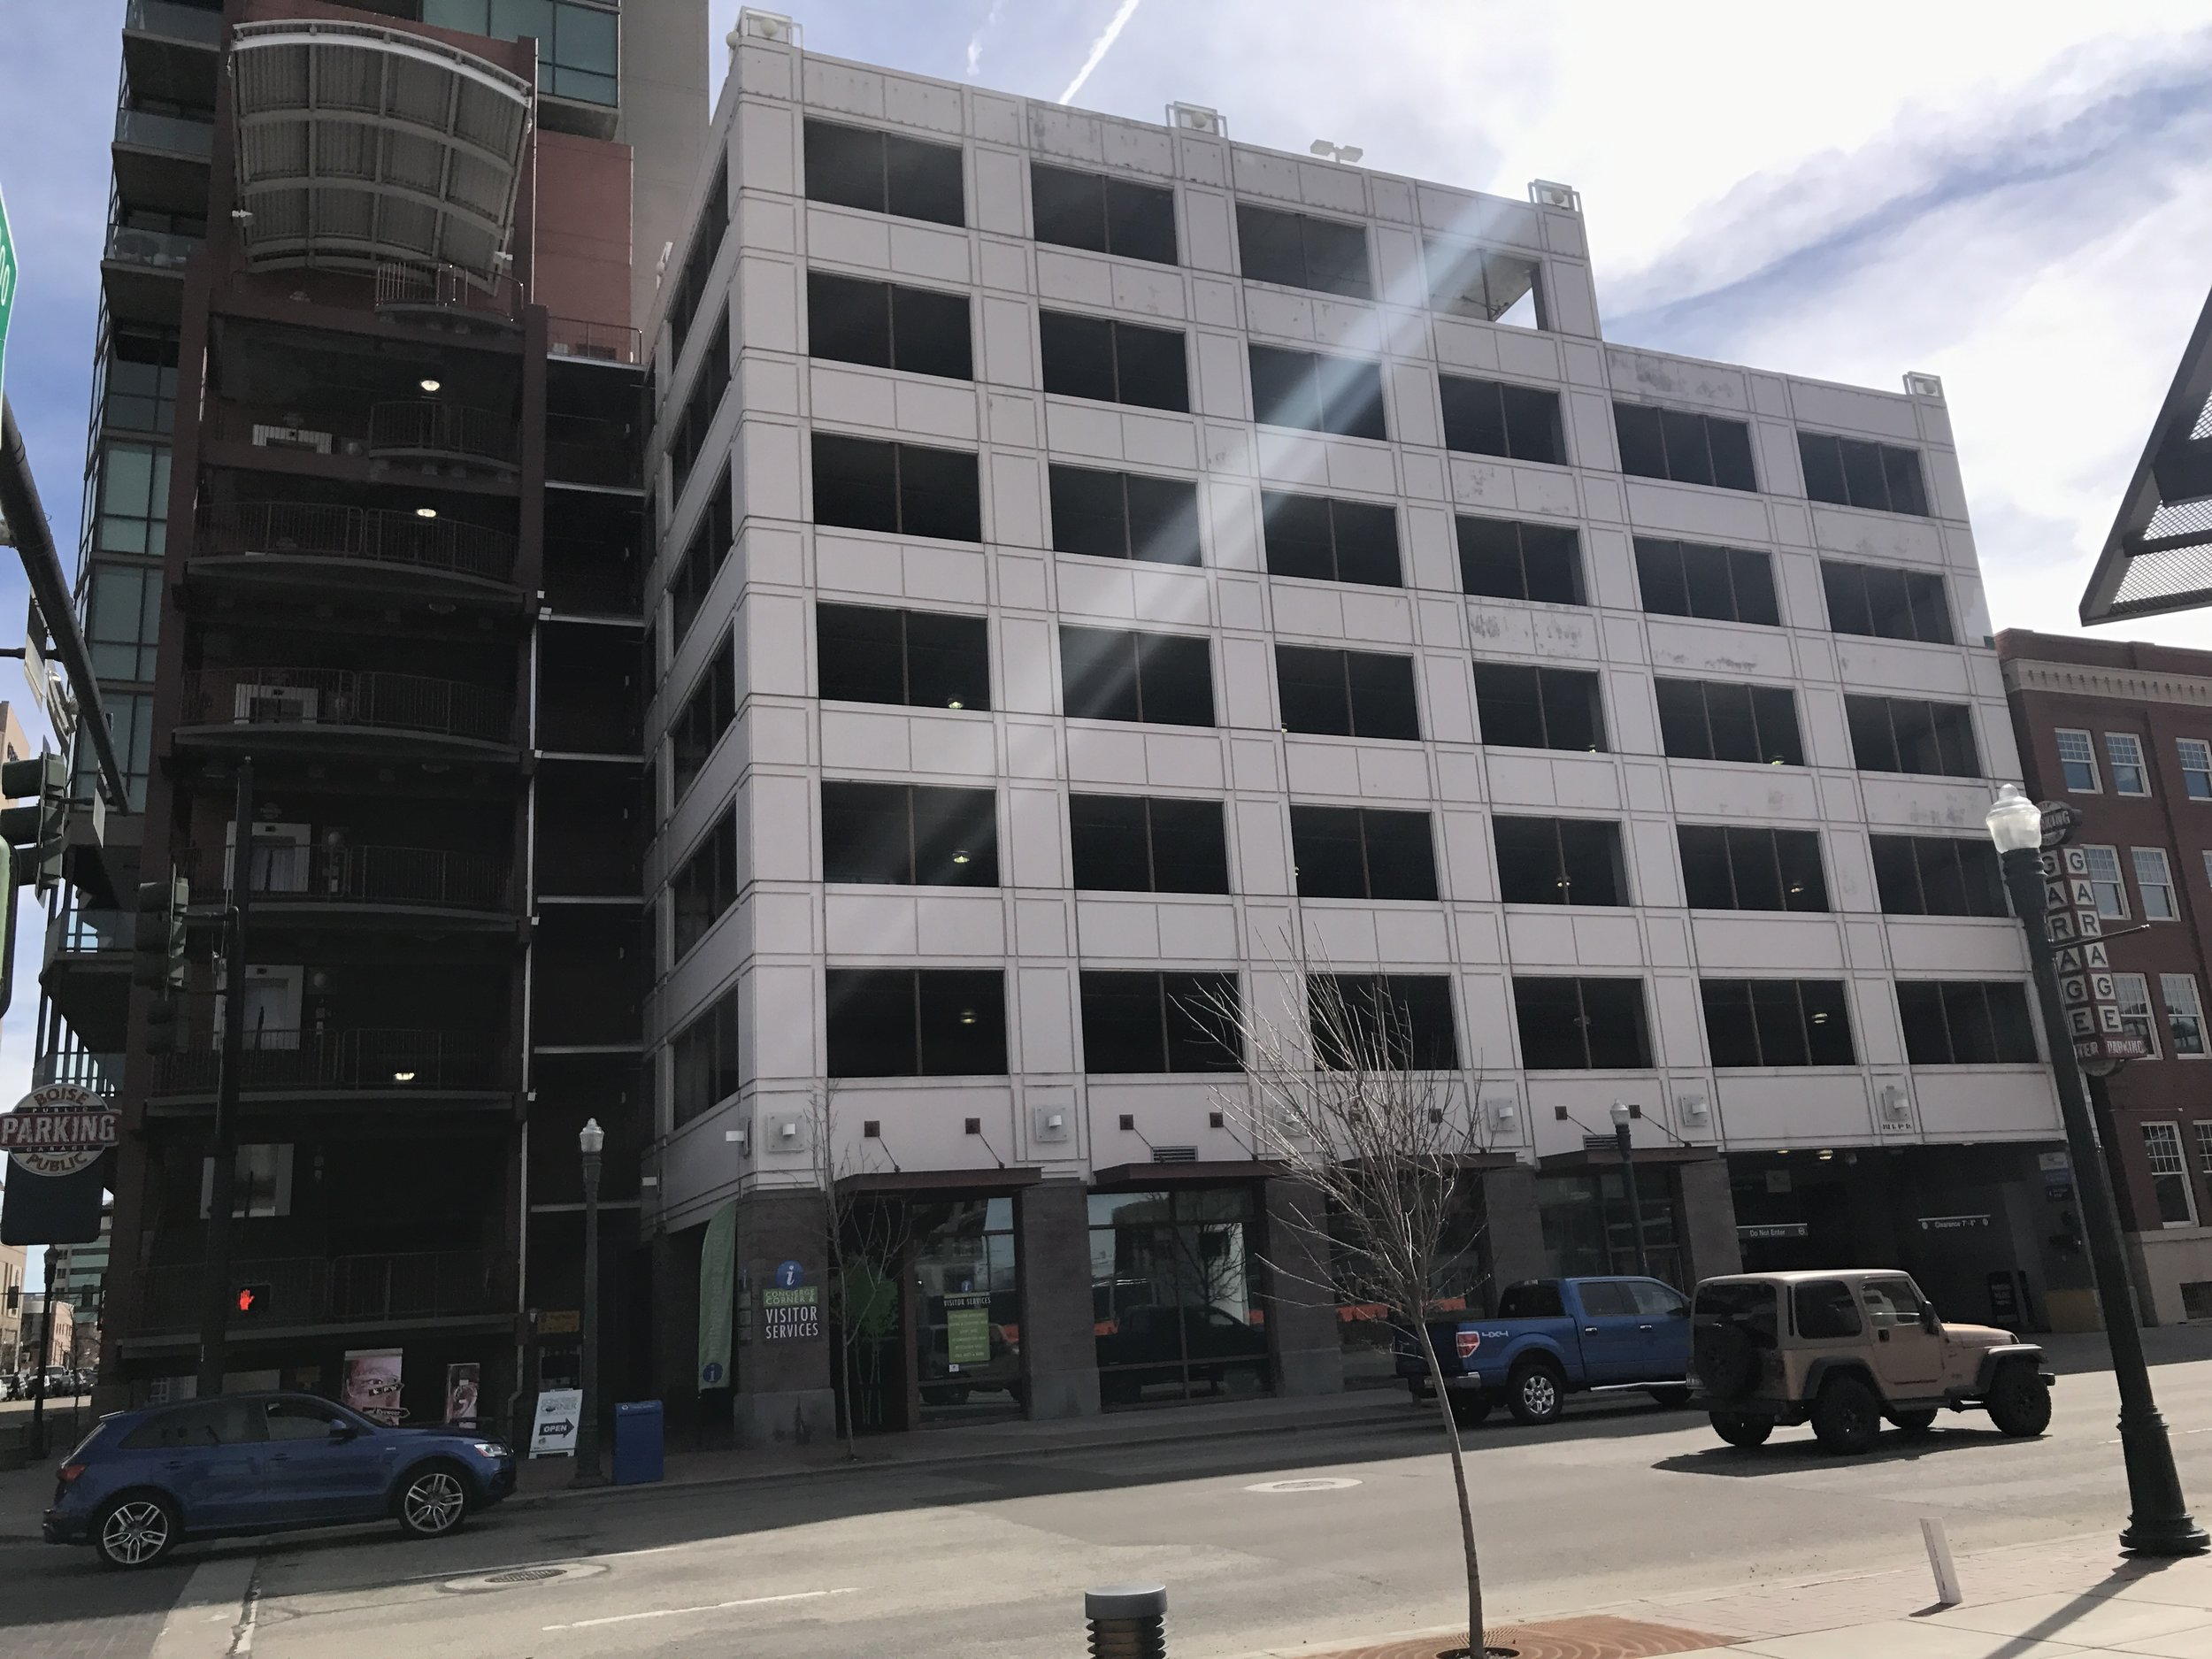 The eight-story 9th & Front Garage was the site of more than 90% of all suicides attempted on a downtown garage from 2014-2016 according to a report from the Idaho Department of Health & Welfare's Suicide Prevention Program. Don Day/BoiseDev.com